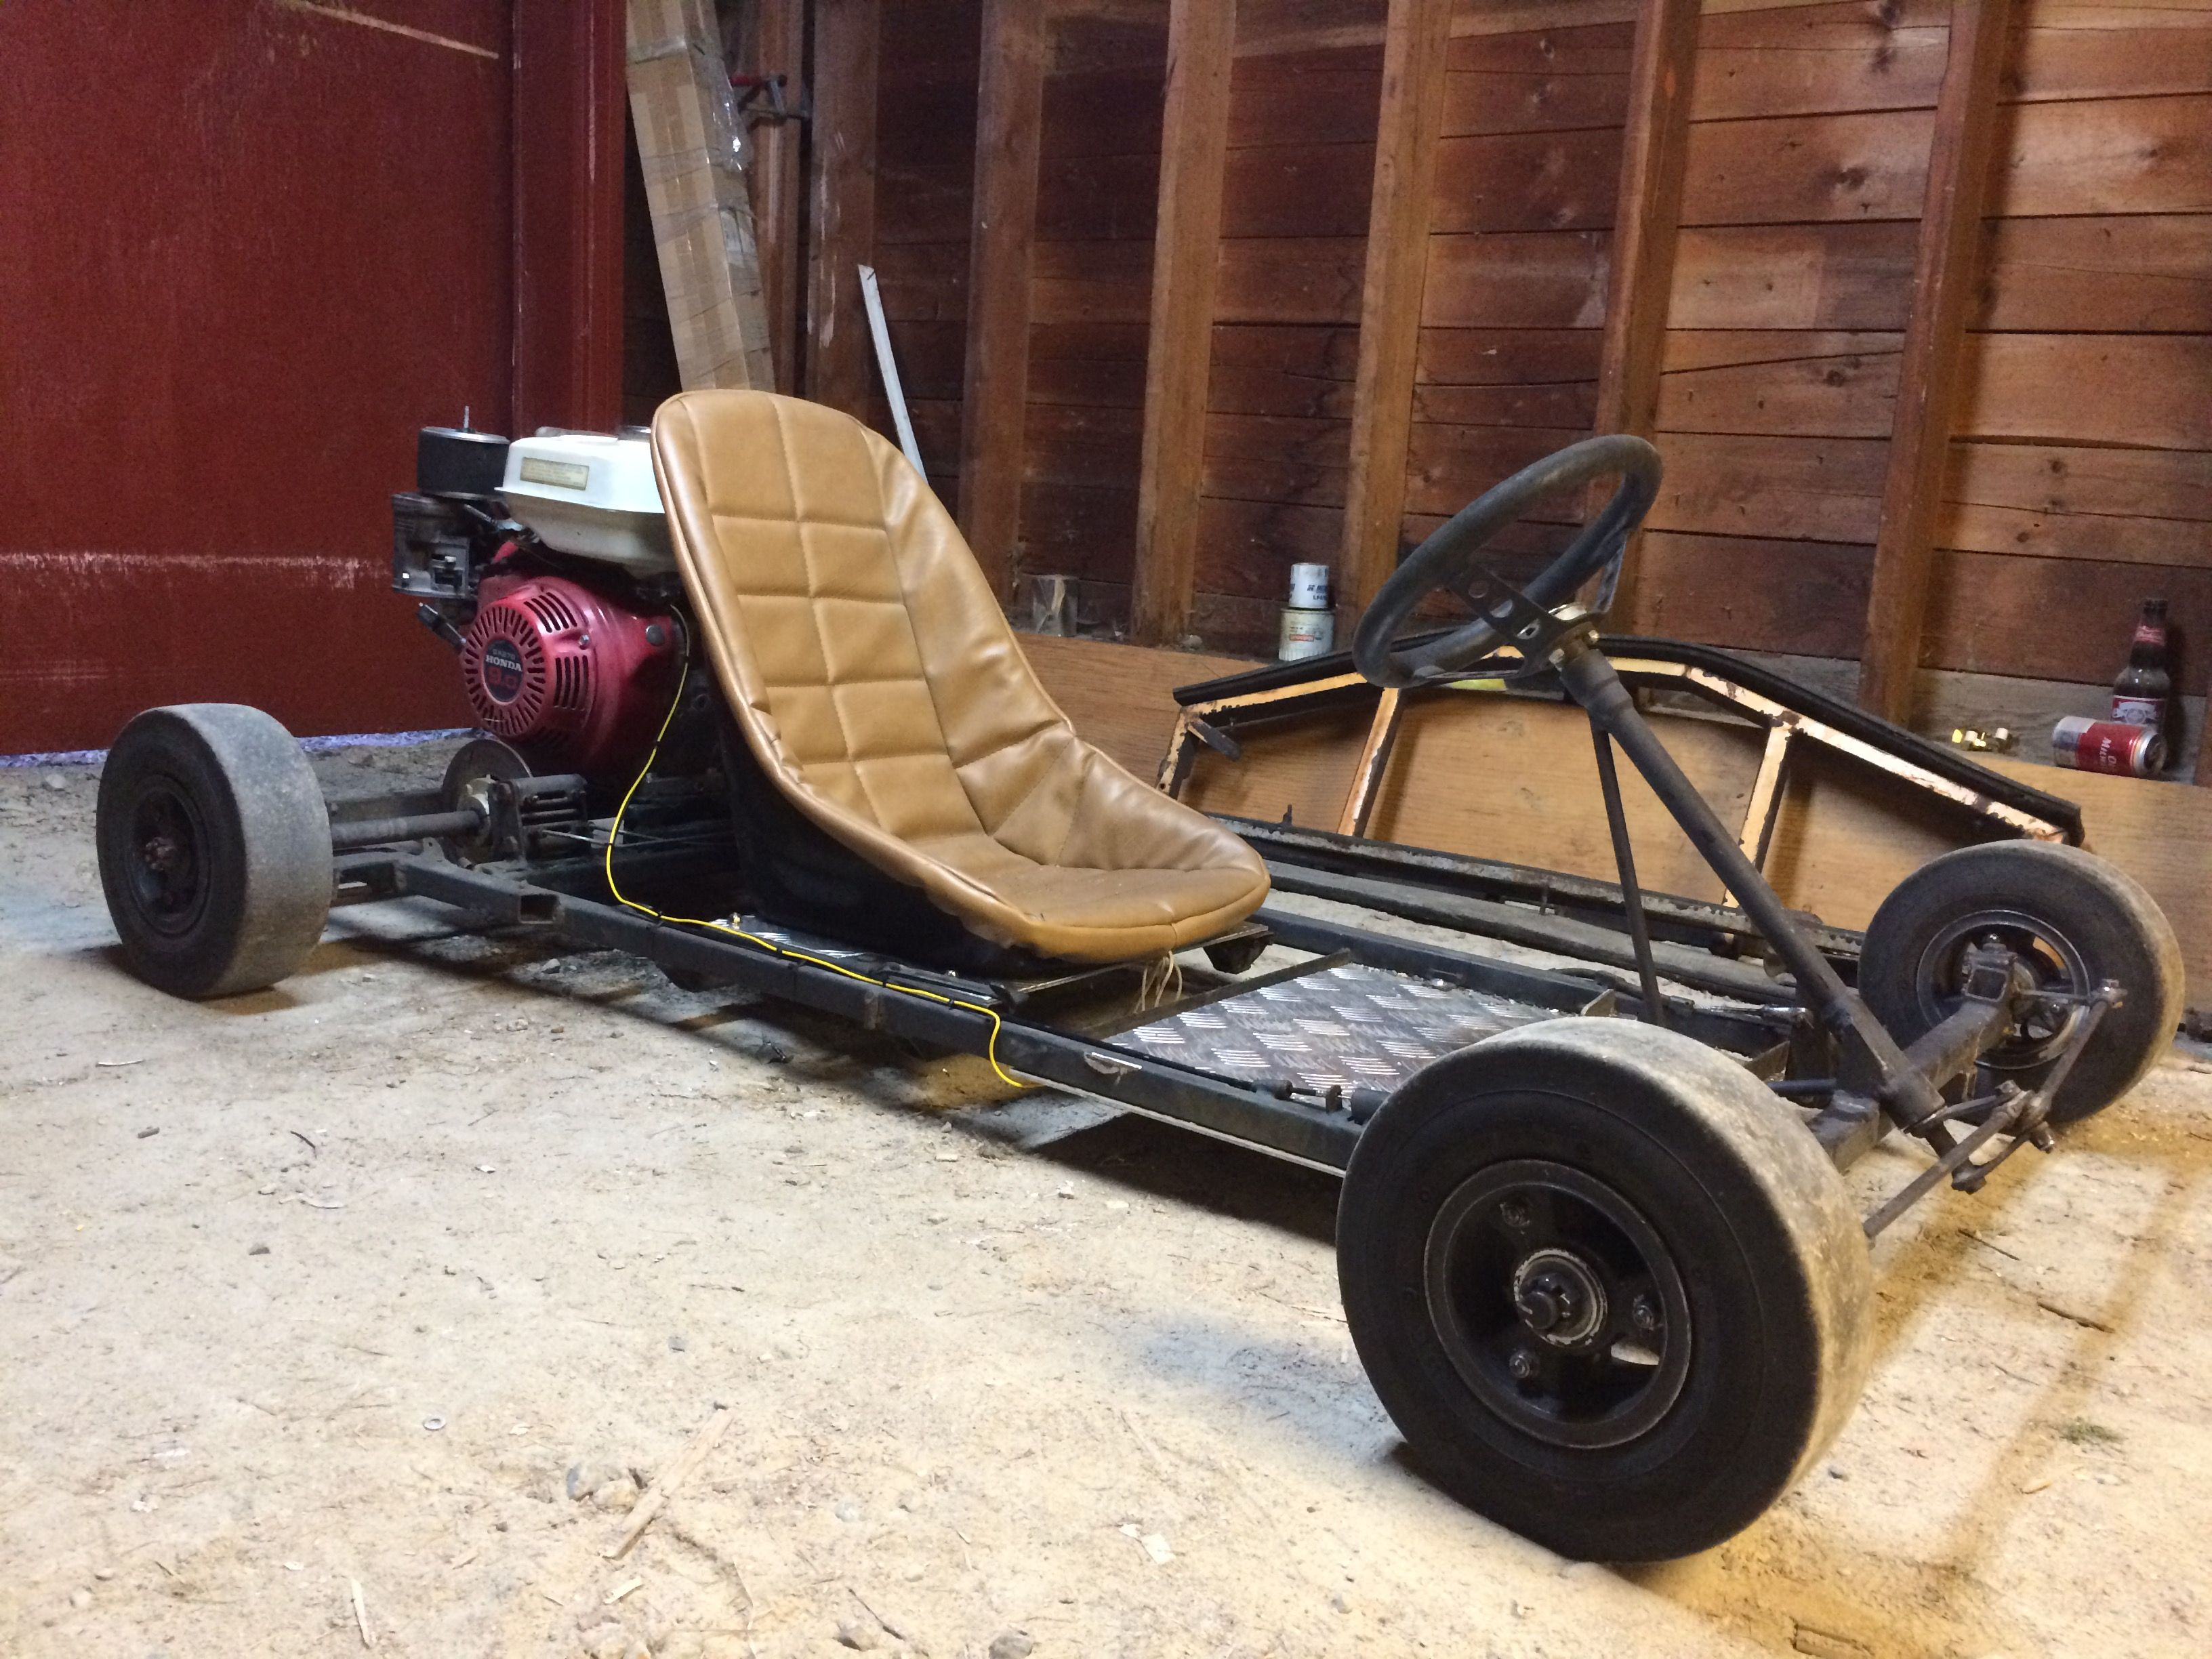 My kick ass old school go kart | Bikes + Karts | Pinterest